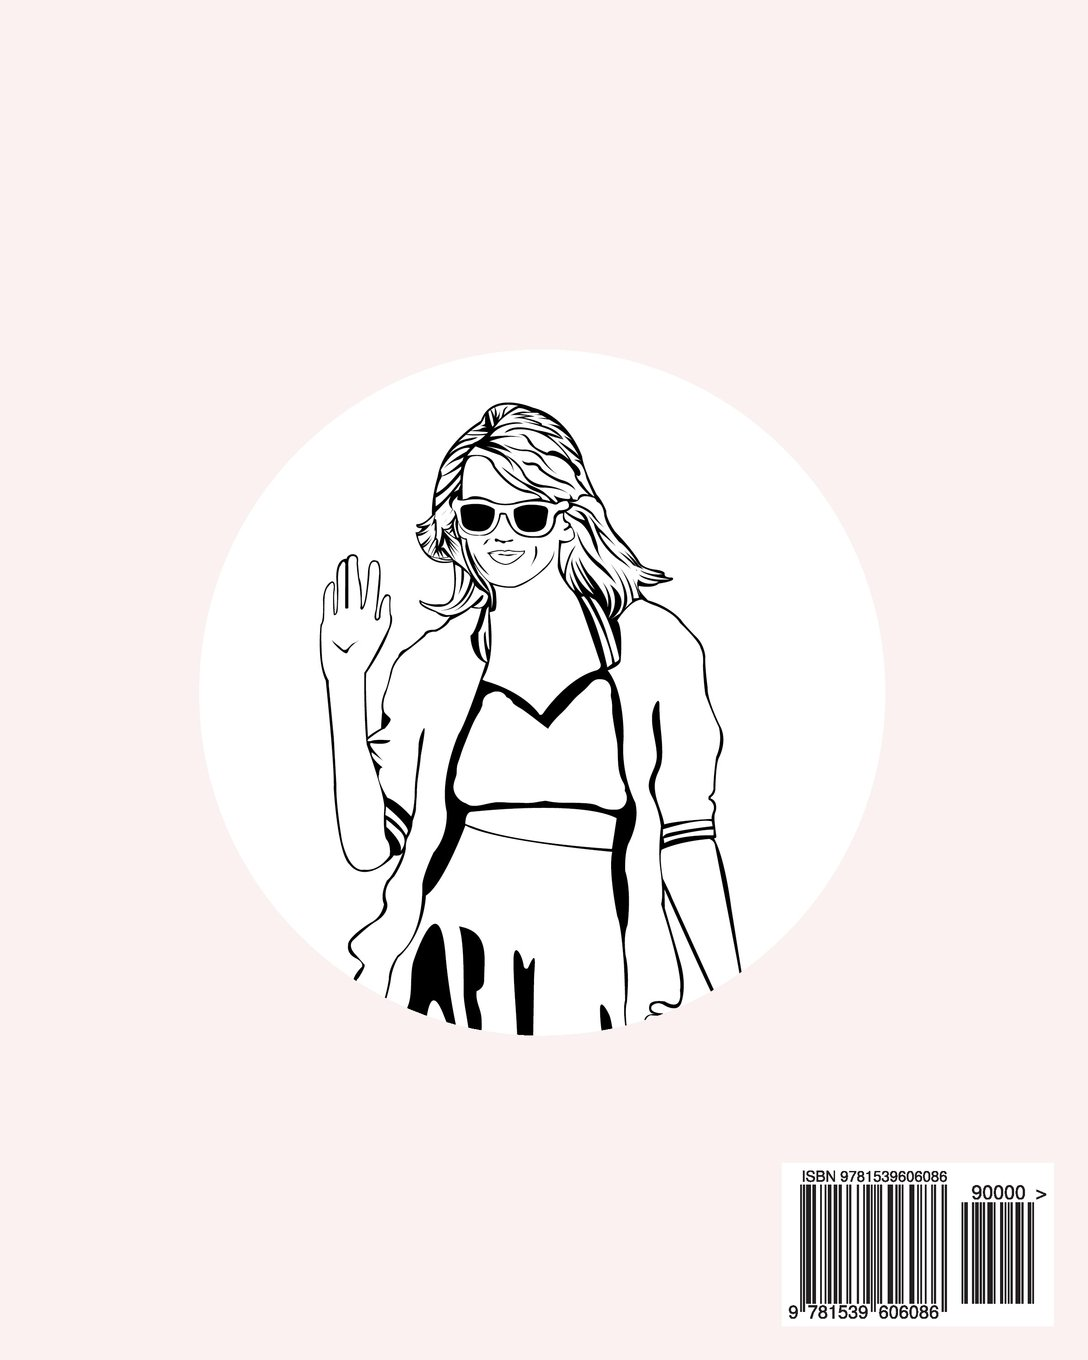 - Taylor Swift: The Ultimate Coloring Book: Taylor Swift Coloring